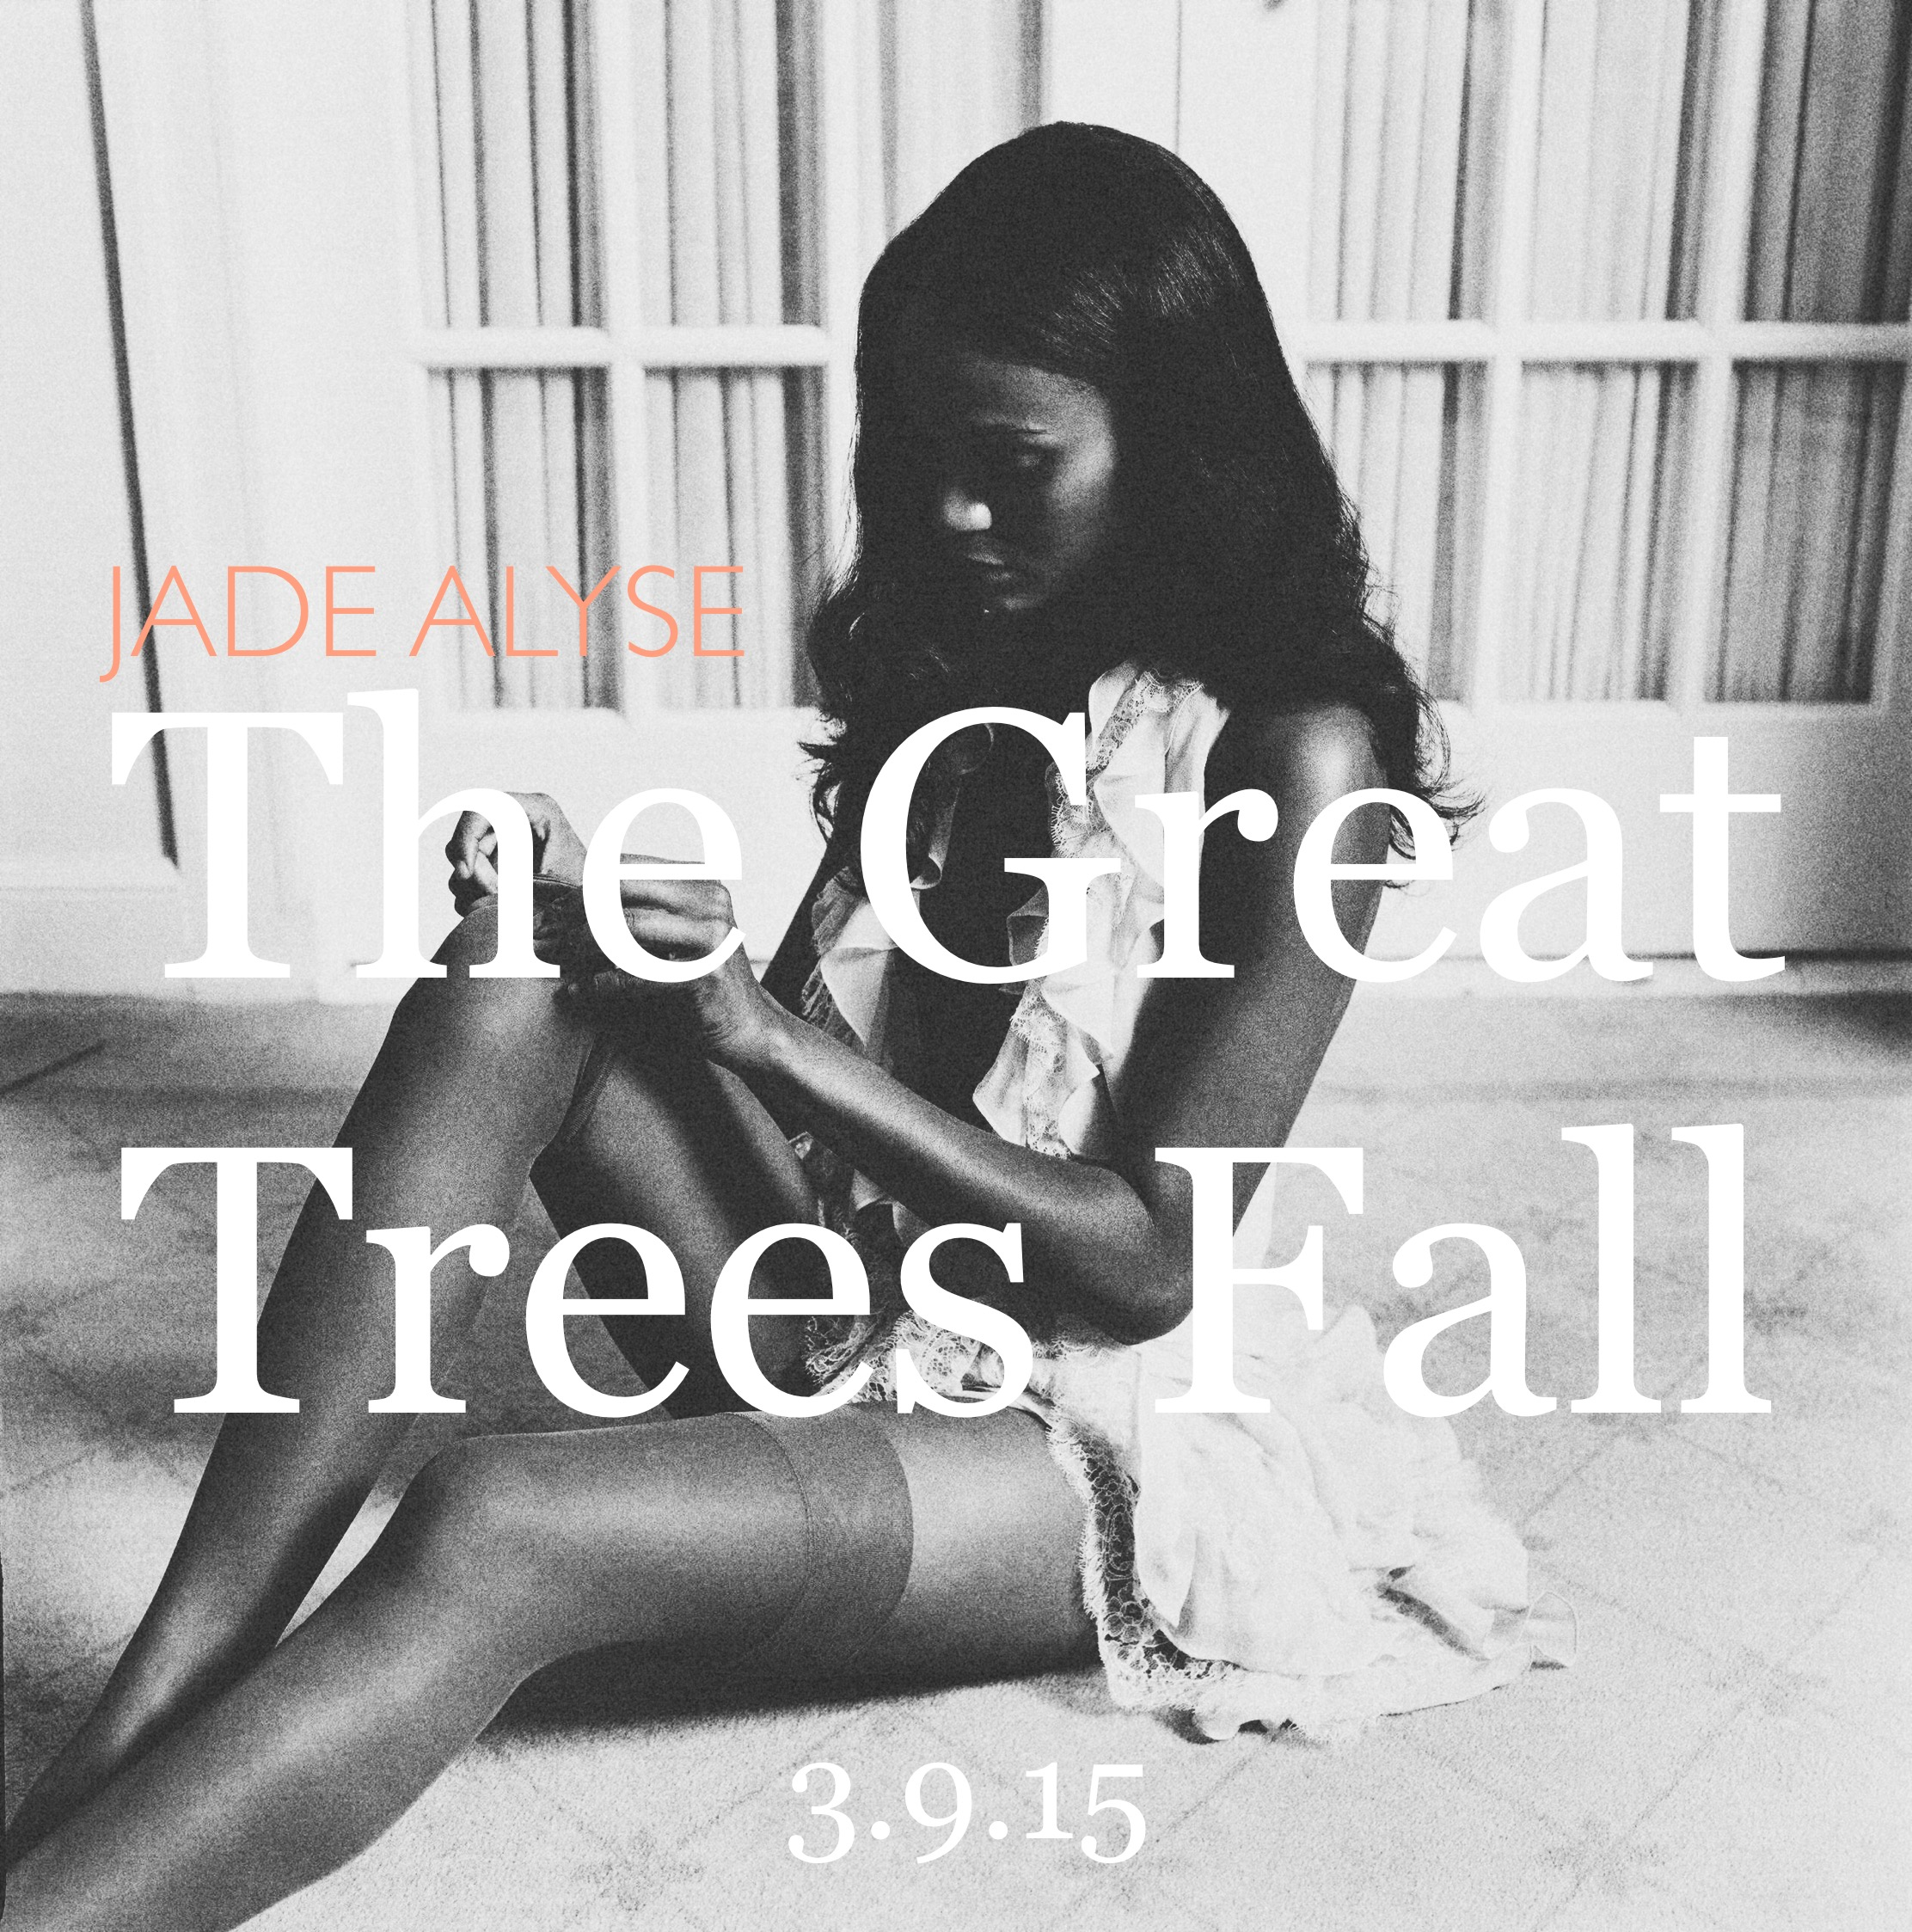 The Great Trees Fall, by Jade Alyse, March 9, 2015